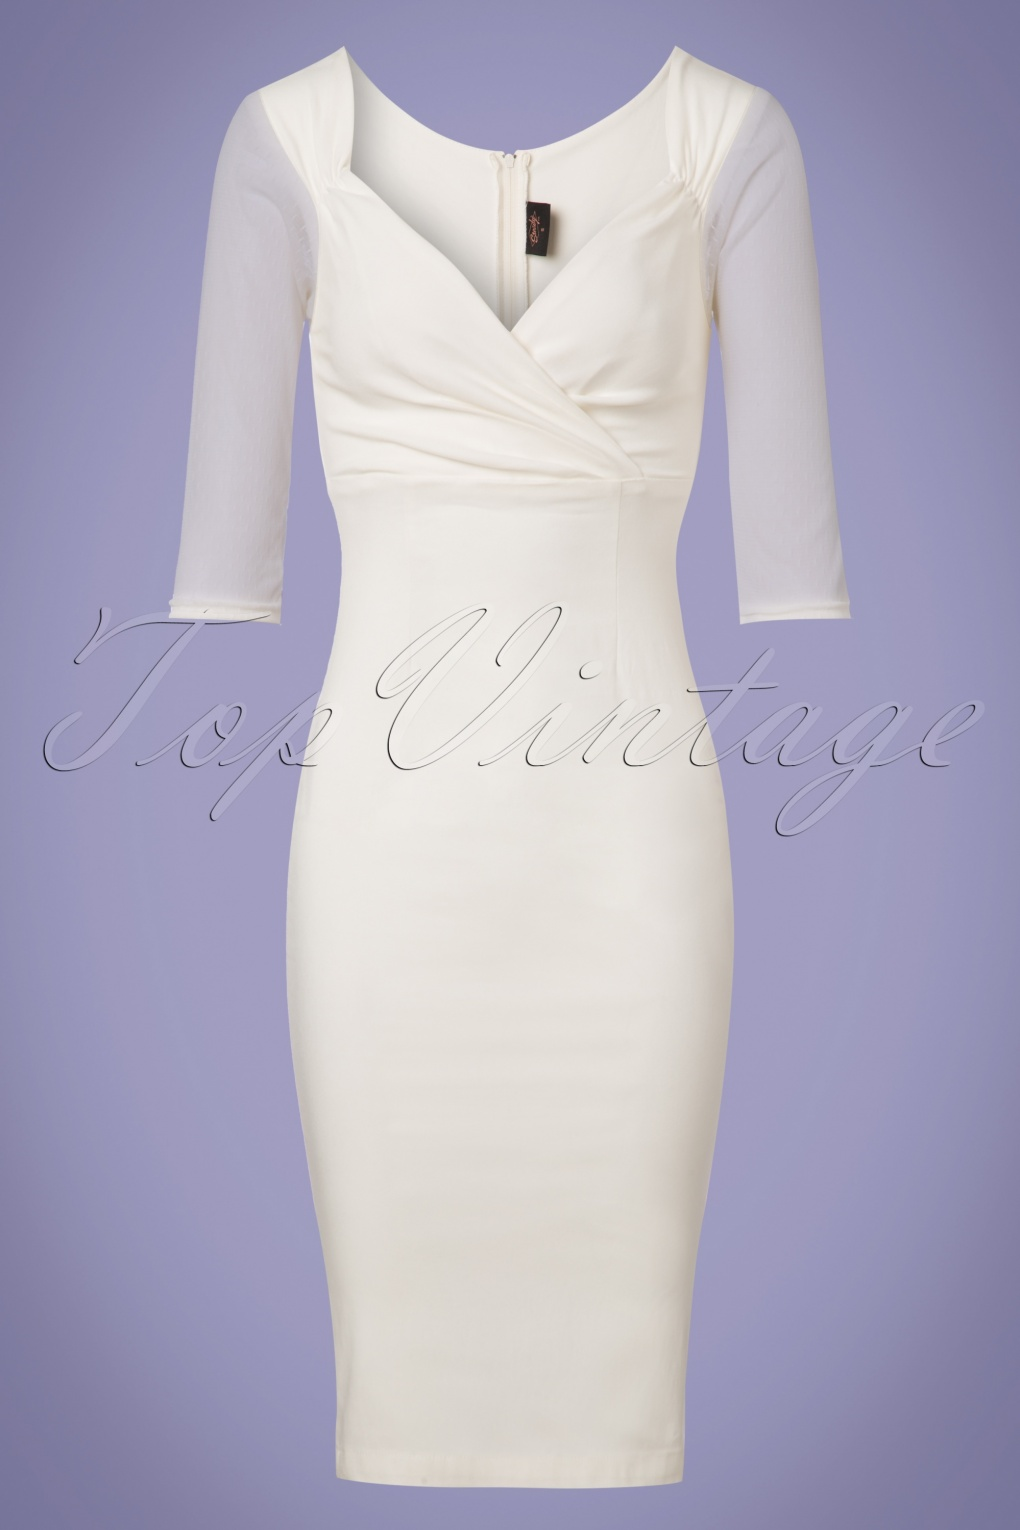 Vintage Inspired Wedding Dress | Vintage Style Wedding Dresses 50s Abigail Special Occasion Diva Pencil Dress in Off White £79.59 AT vintagedancer.com